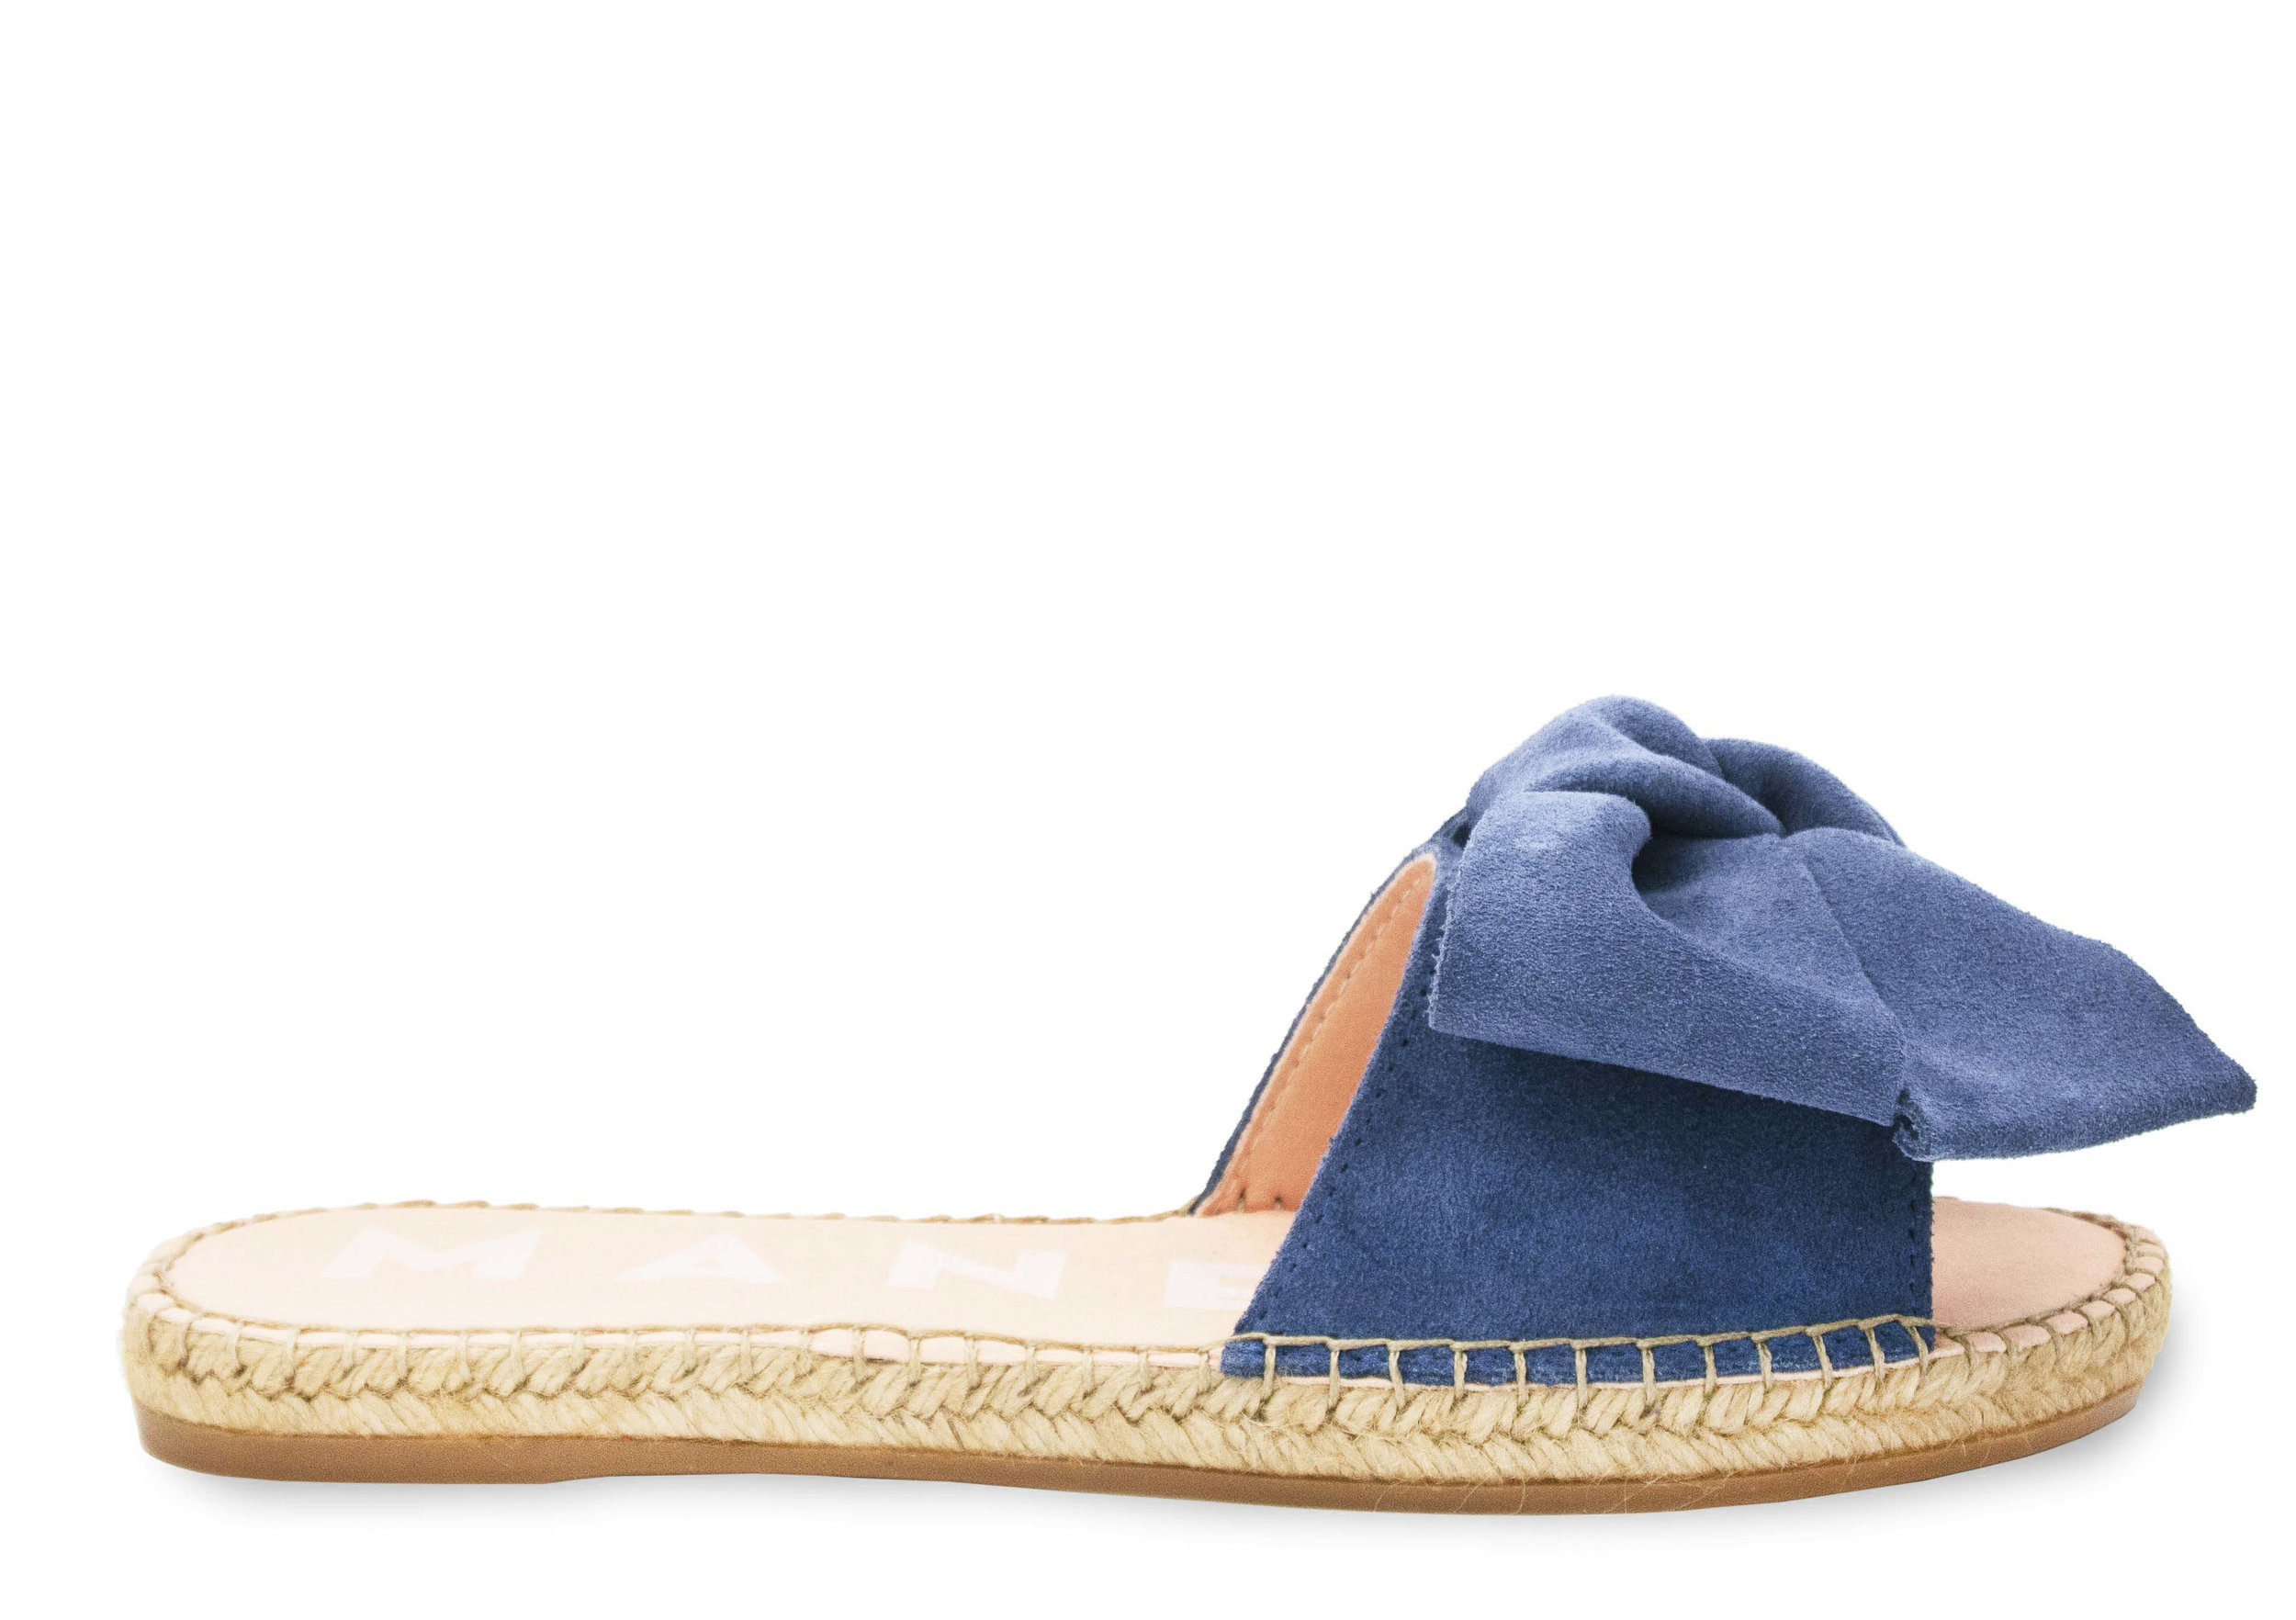 a36539461 MANEBÍ - Espadrilles Handmade in Spain - Official Website - Flat Sandals  with Bow - Versailles - Sunny Yellow